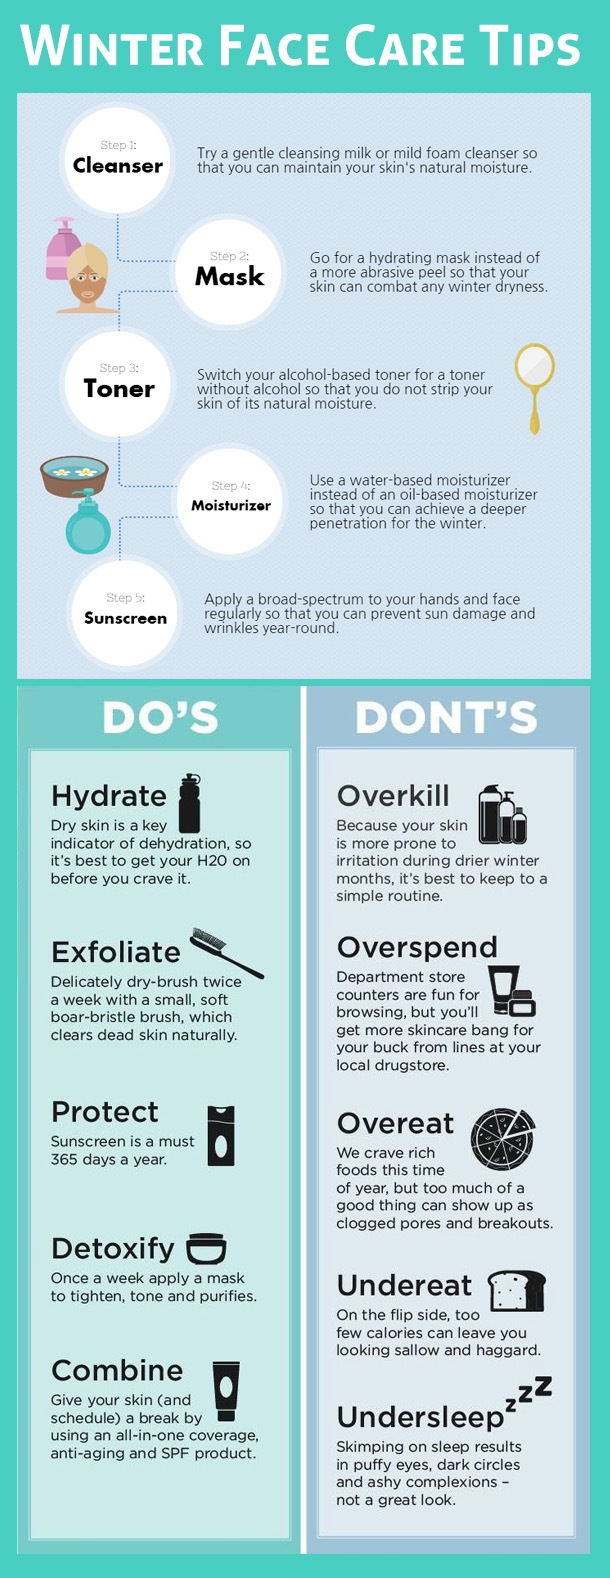 Winter Face Care Tips